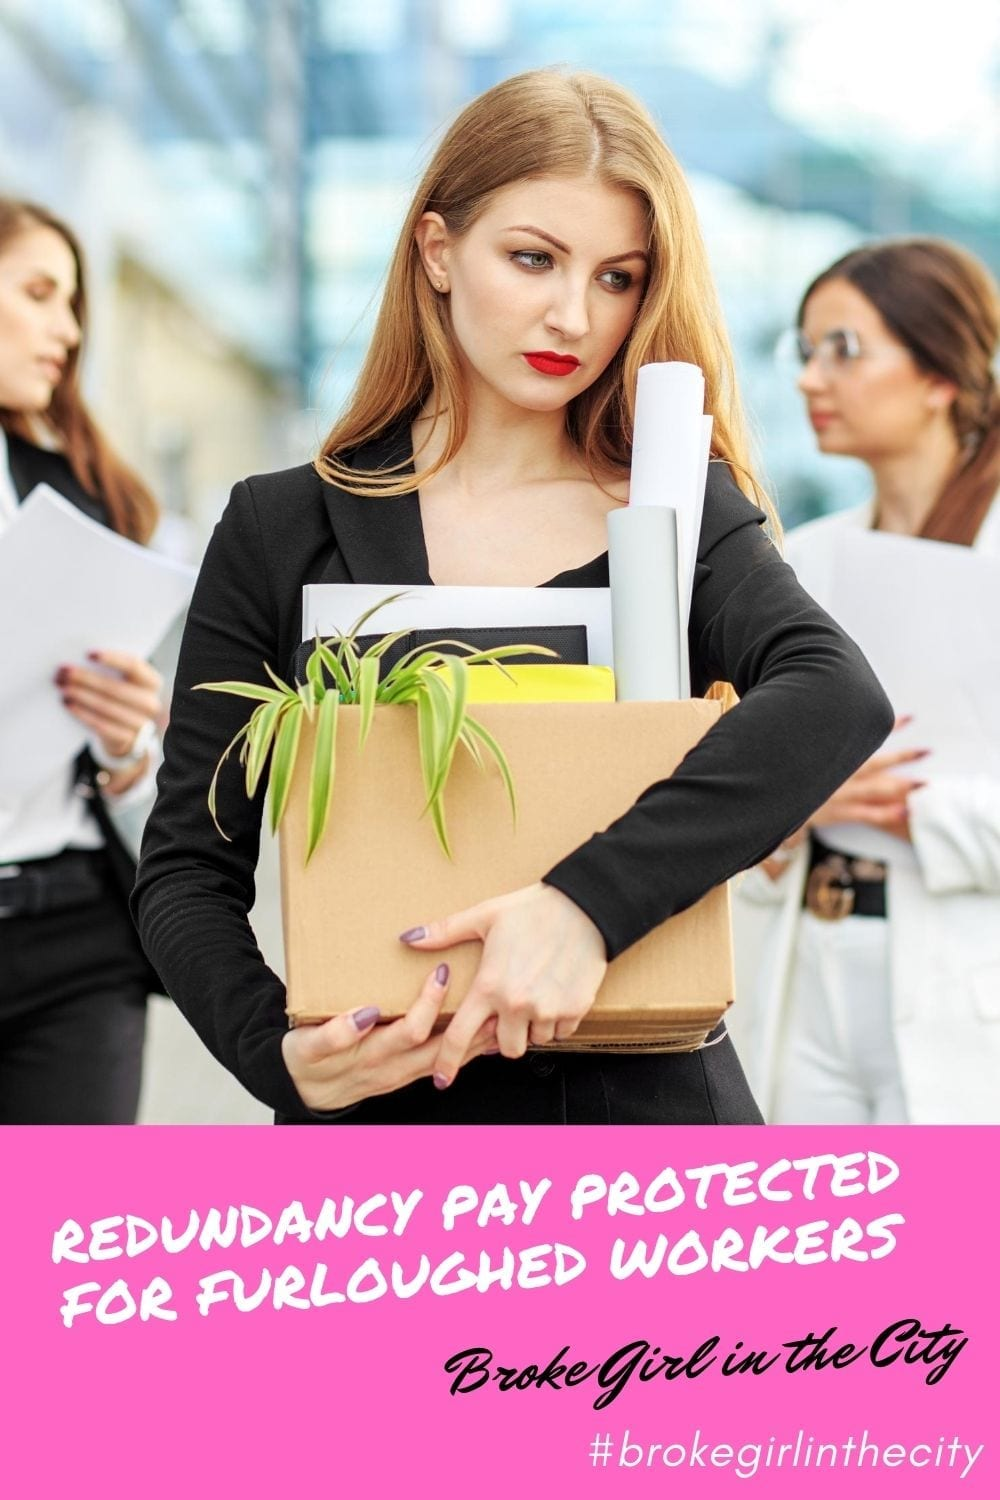 Redundancy pay protected for furloughed workers